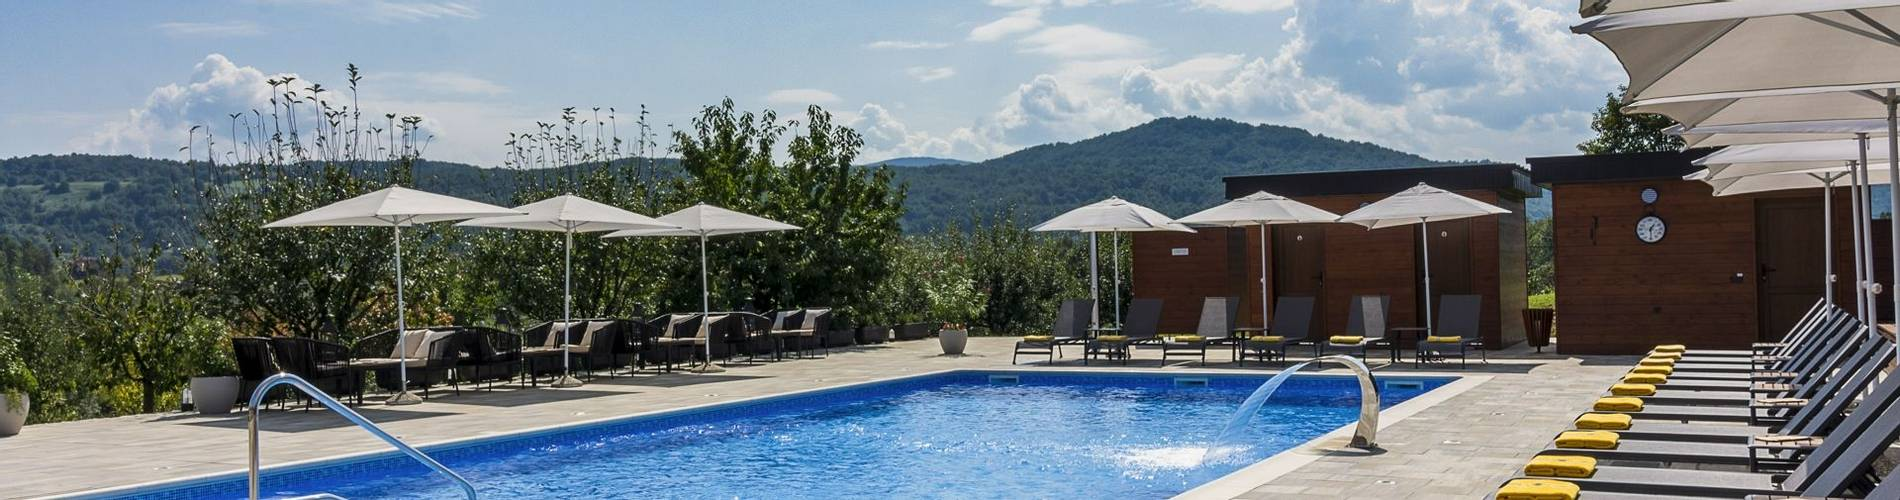 Swimming Pool Hotel Degenija Plitvice Lakes Croatia.jpg